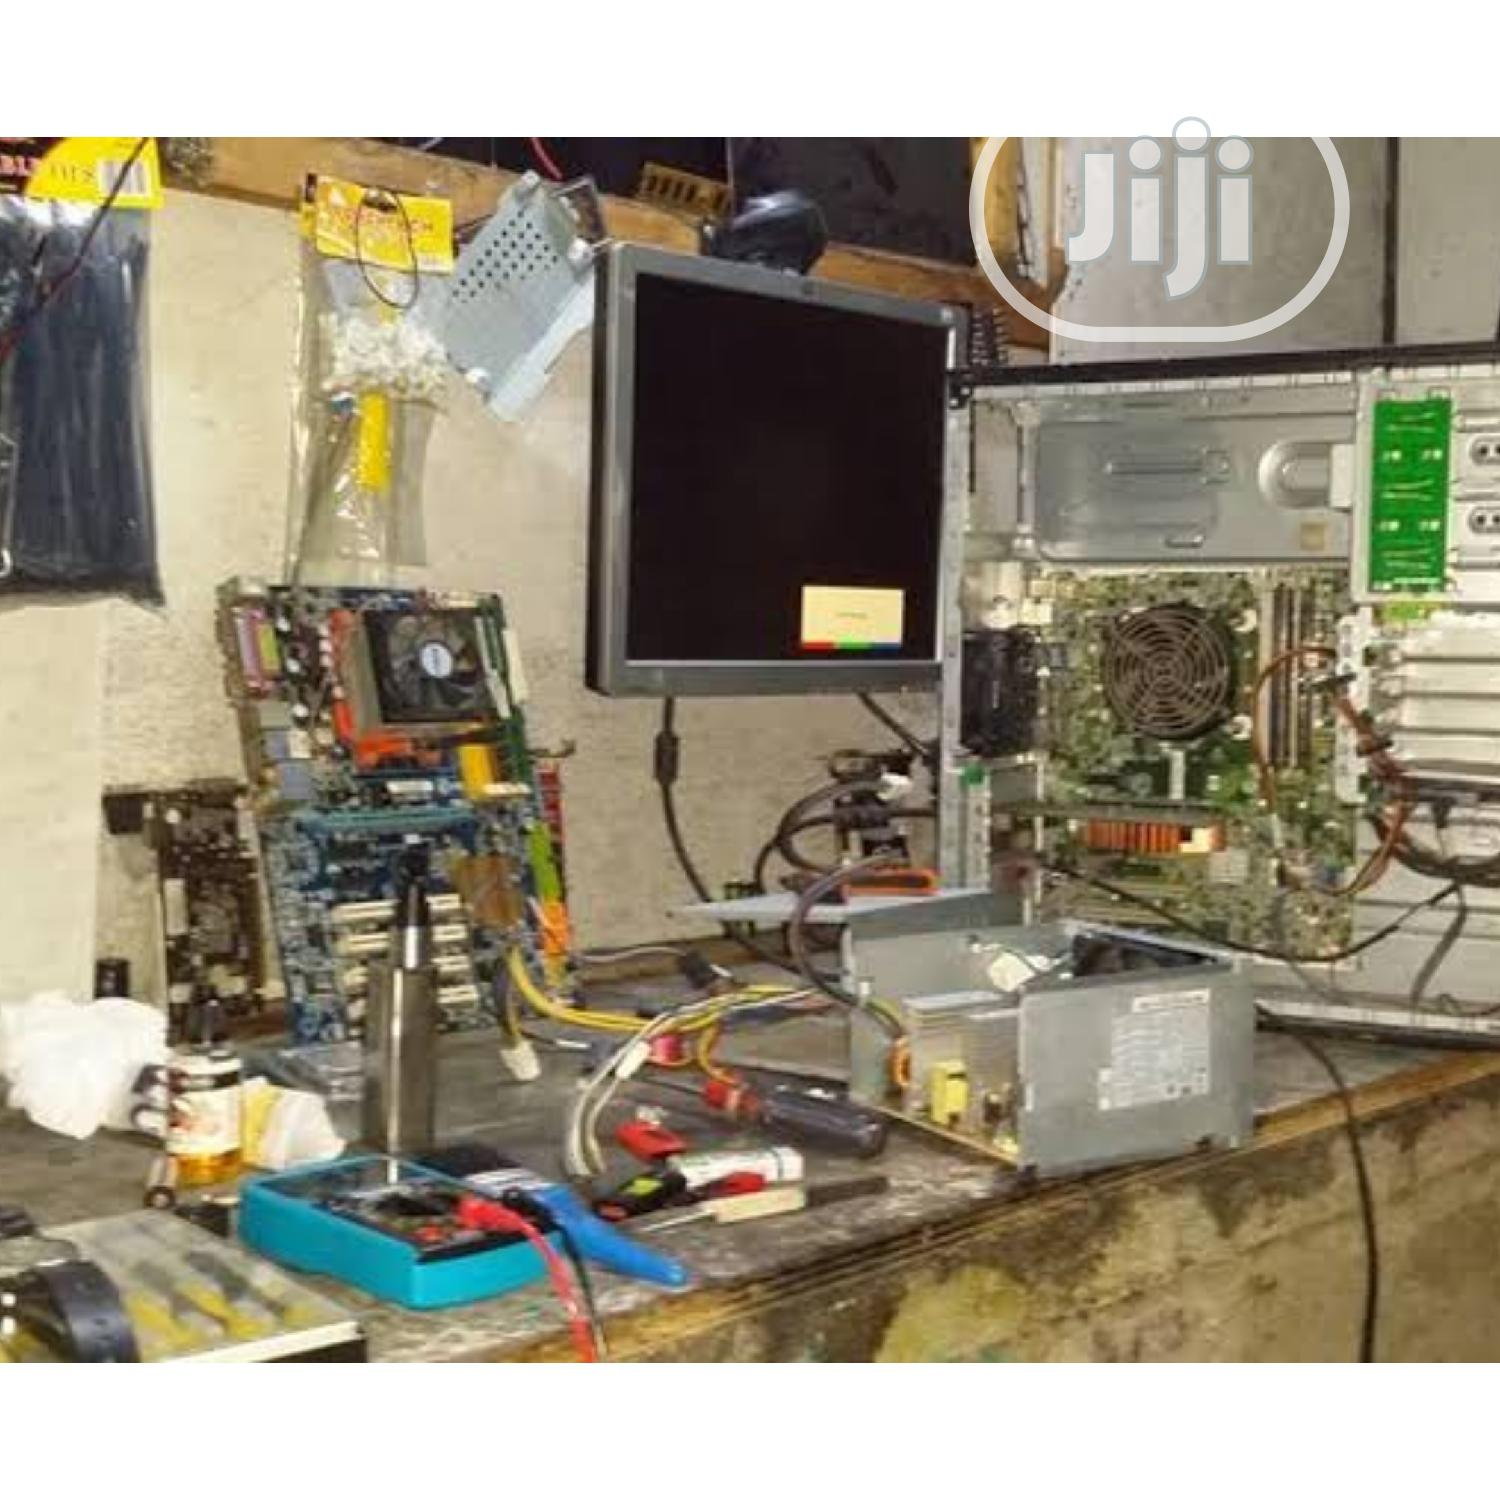 Repairs Damage LCD/LED Computer Monitor | Computer Monitors for sale in Surulere, Lagos State, Nigeria